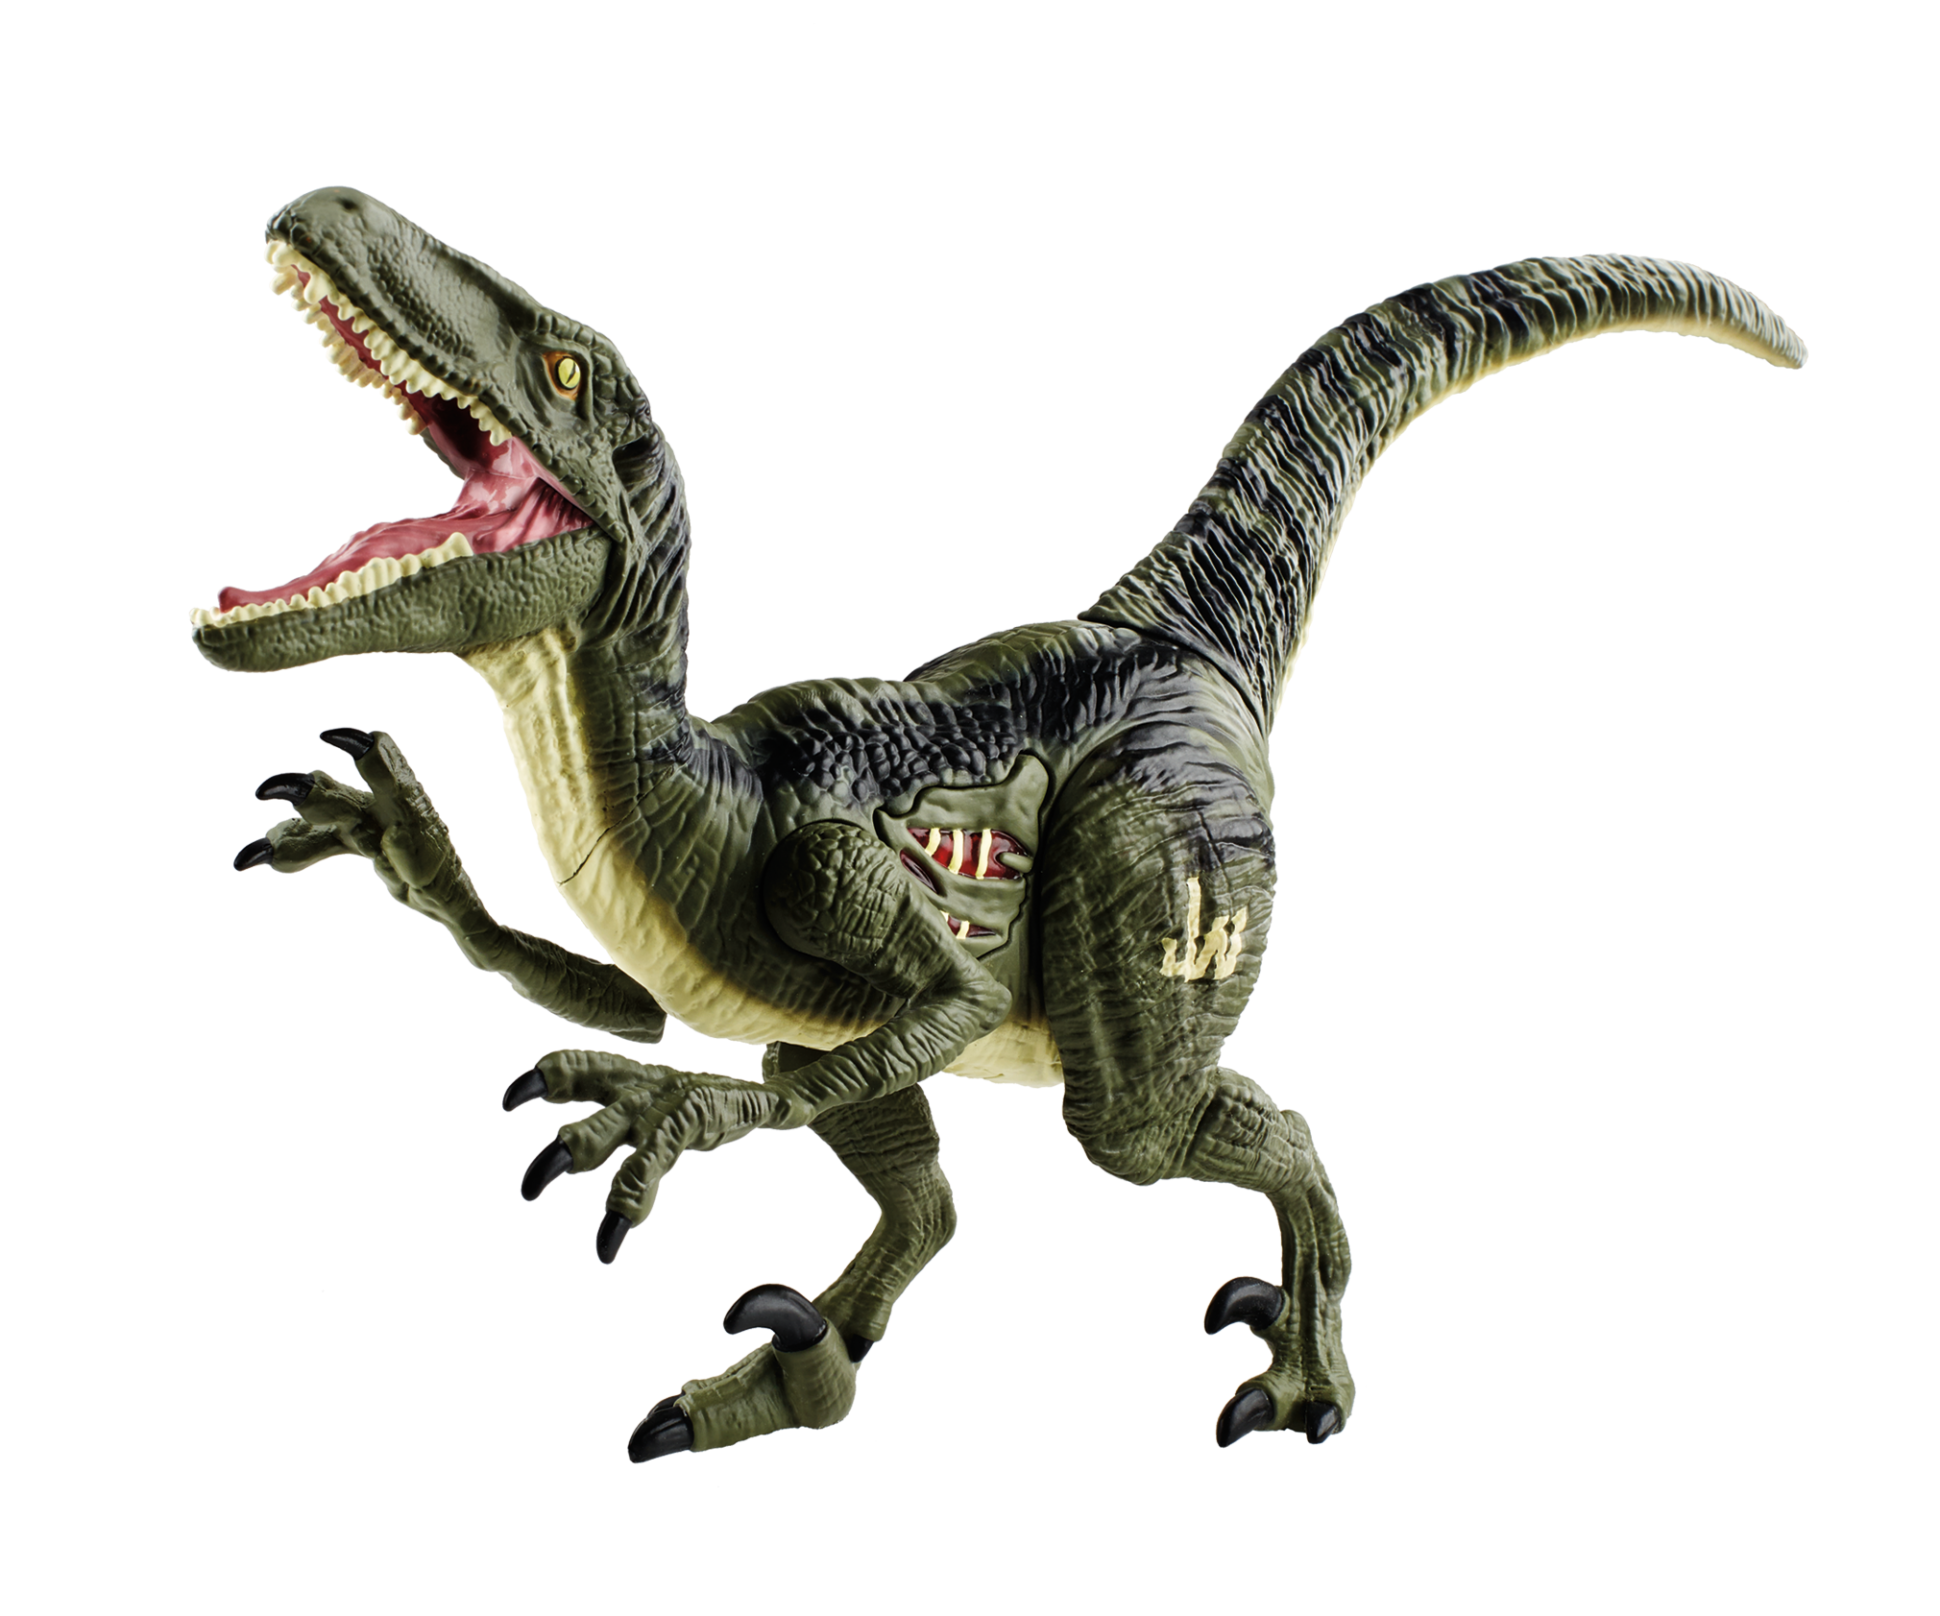 Download jurassic world free download hq png image freepngimg download png image jurassic world free download 227 gumiabroncs Choice Image